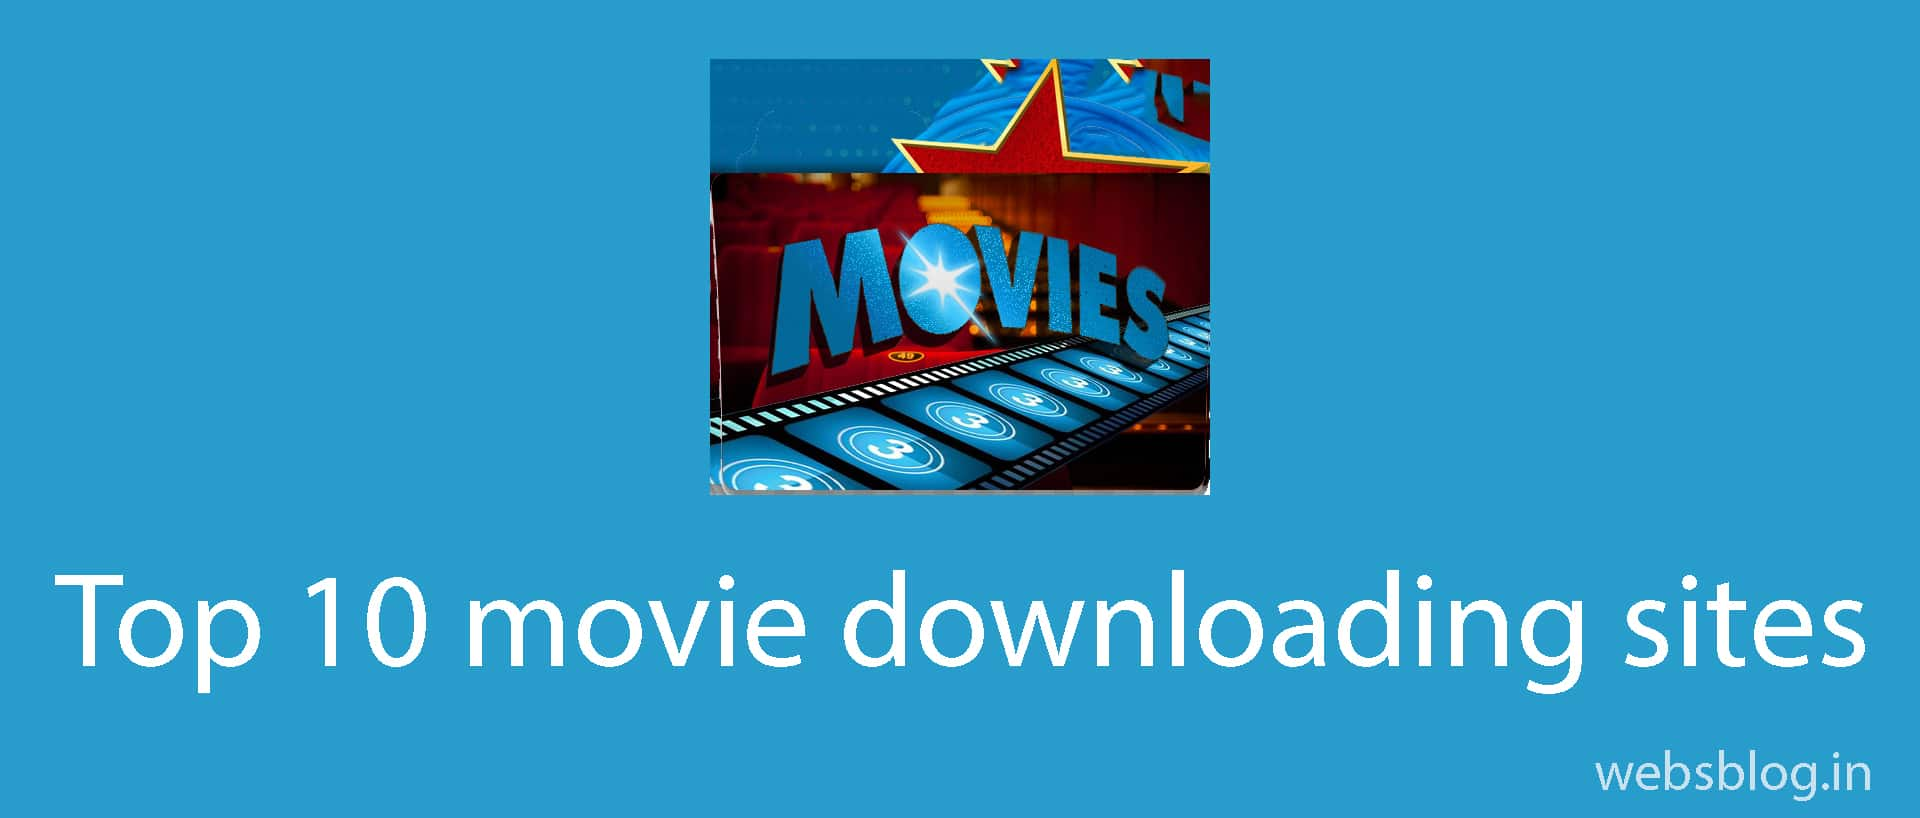 Top-10-movie-downloading